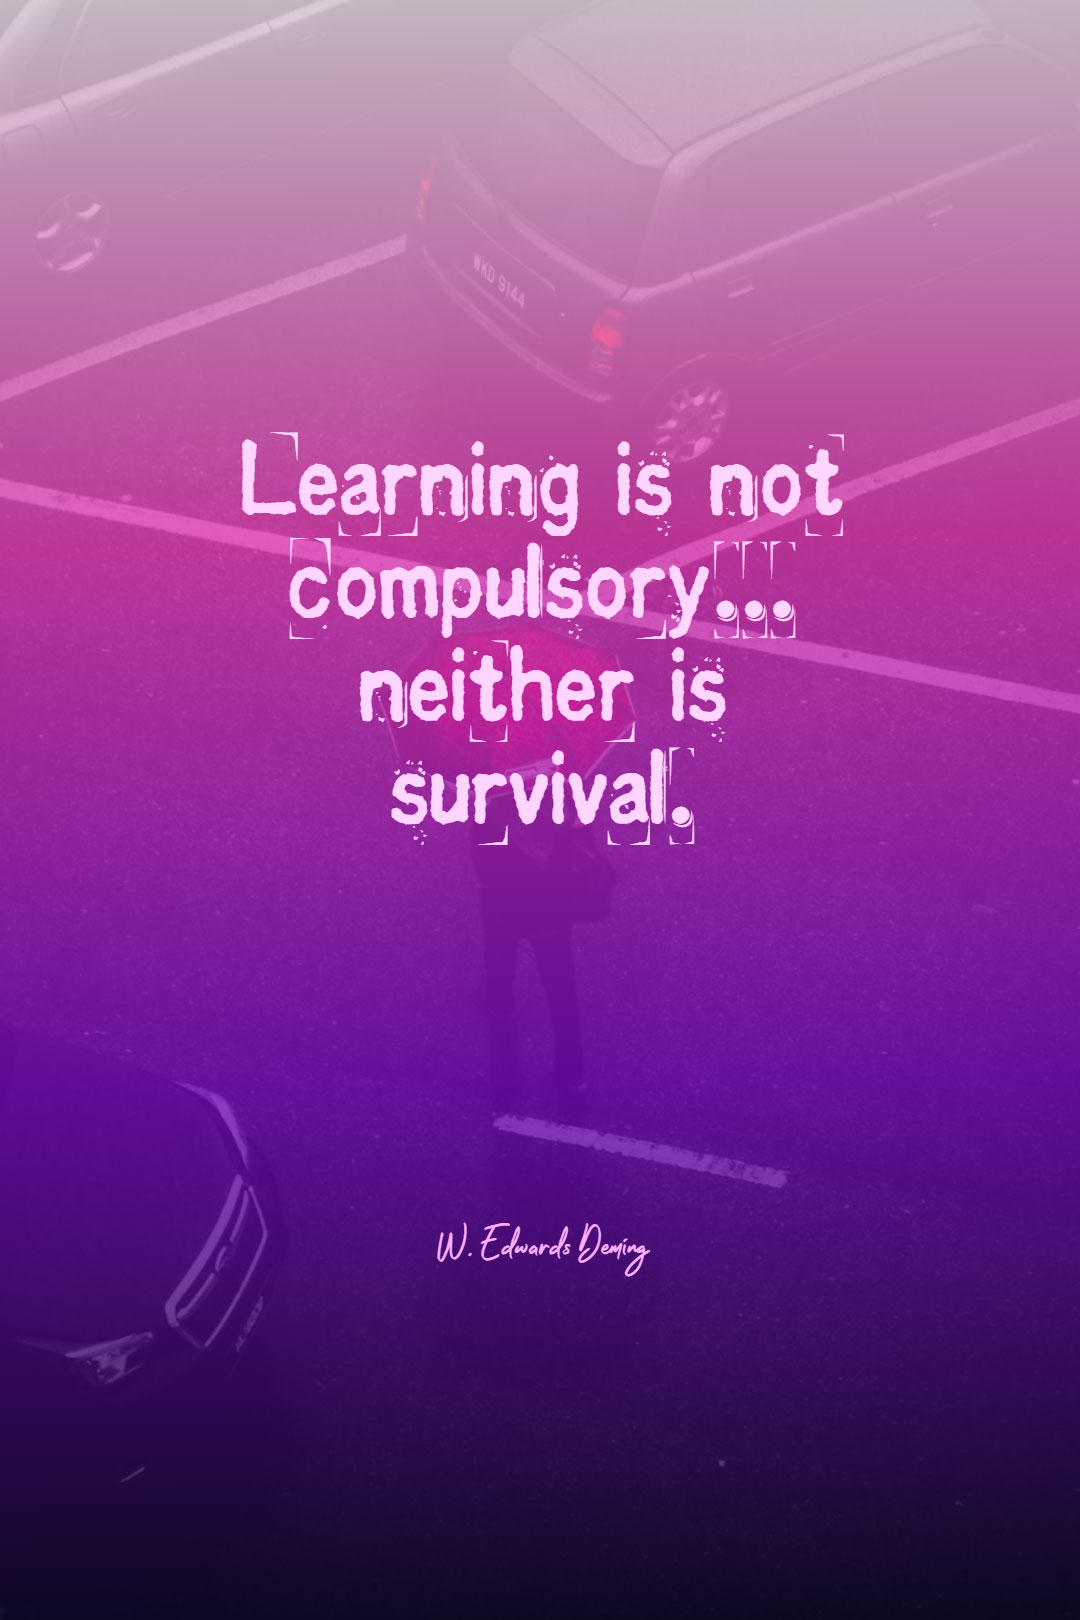 Quotes image of Learning is not compulsory... neither is survival.